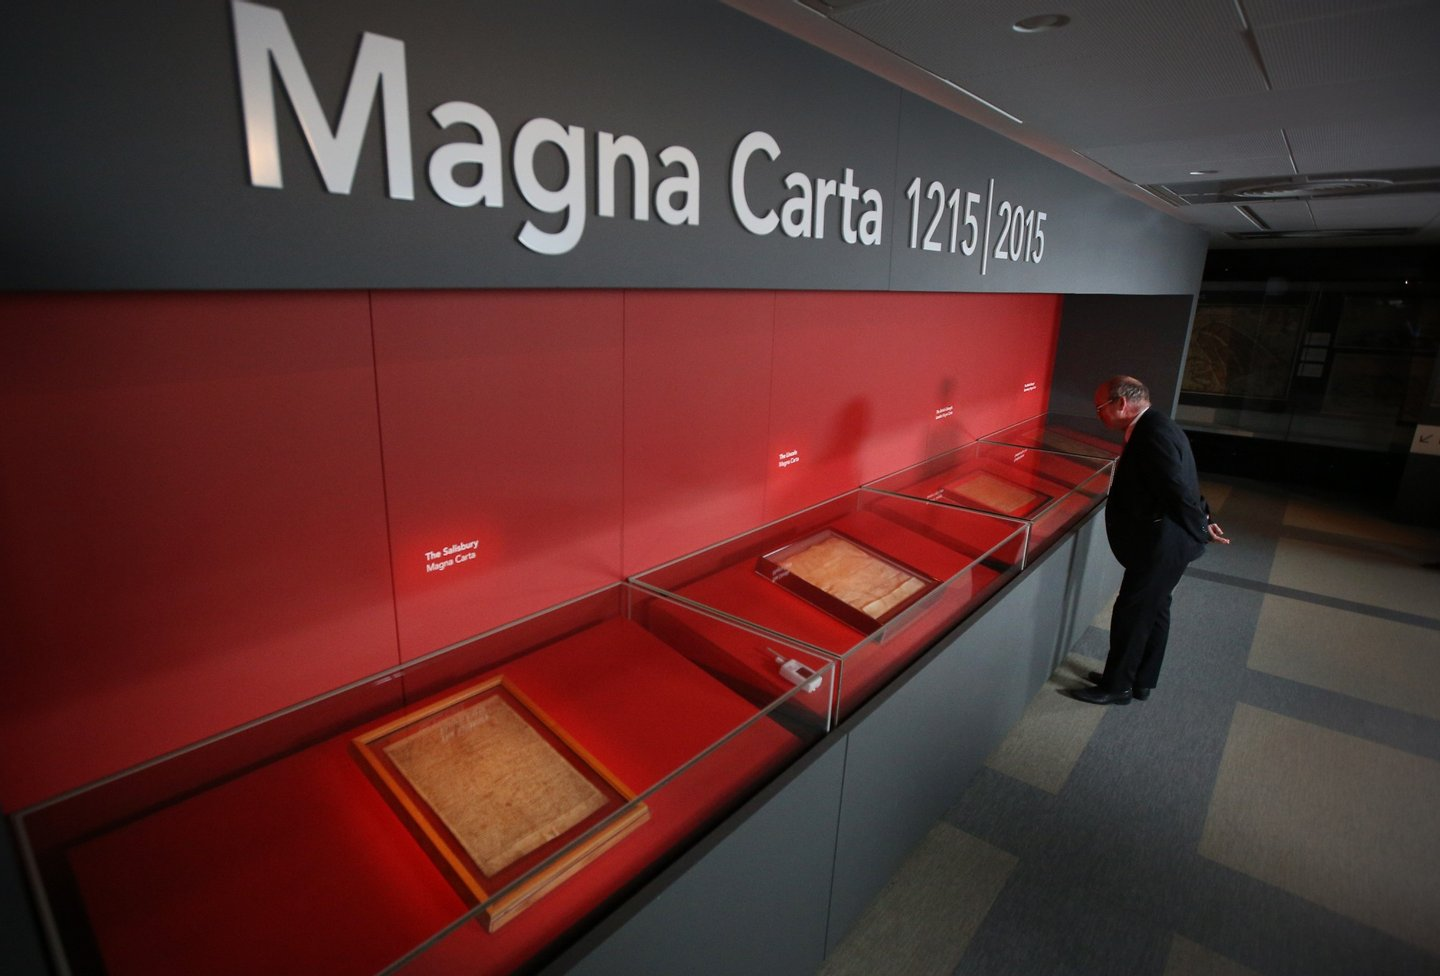 LONDON, ENGLAND - FEBRUARY 02: A visitor looks at one of the four copies of the Magna Carta on display at the British Library on February 2, 2015 in London, England. Magna Carta, one of the world's most influential documents, is an agreement granted by King John in 1215 as a practical solution to a political crisis, which in the centuries since has become a potent symbol of liberty and the rule of law. The British Library, Lincoln Cathedral and Salisbury Cathedral have brought those four original surviving Magna Carta manuscripts together in one place, for the first time as part of a year of international celebrations to mark the 800th anniversary of the issue of the Charter by King John in 1215. (Photo by Peter Macdiarmid/Getty Images)